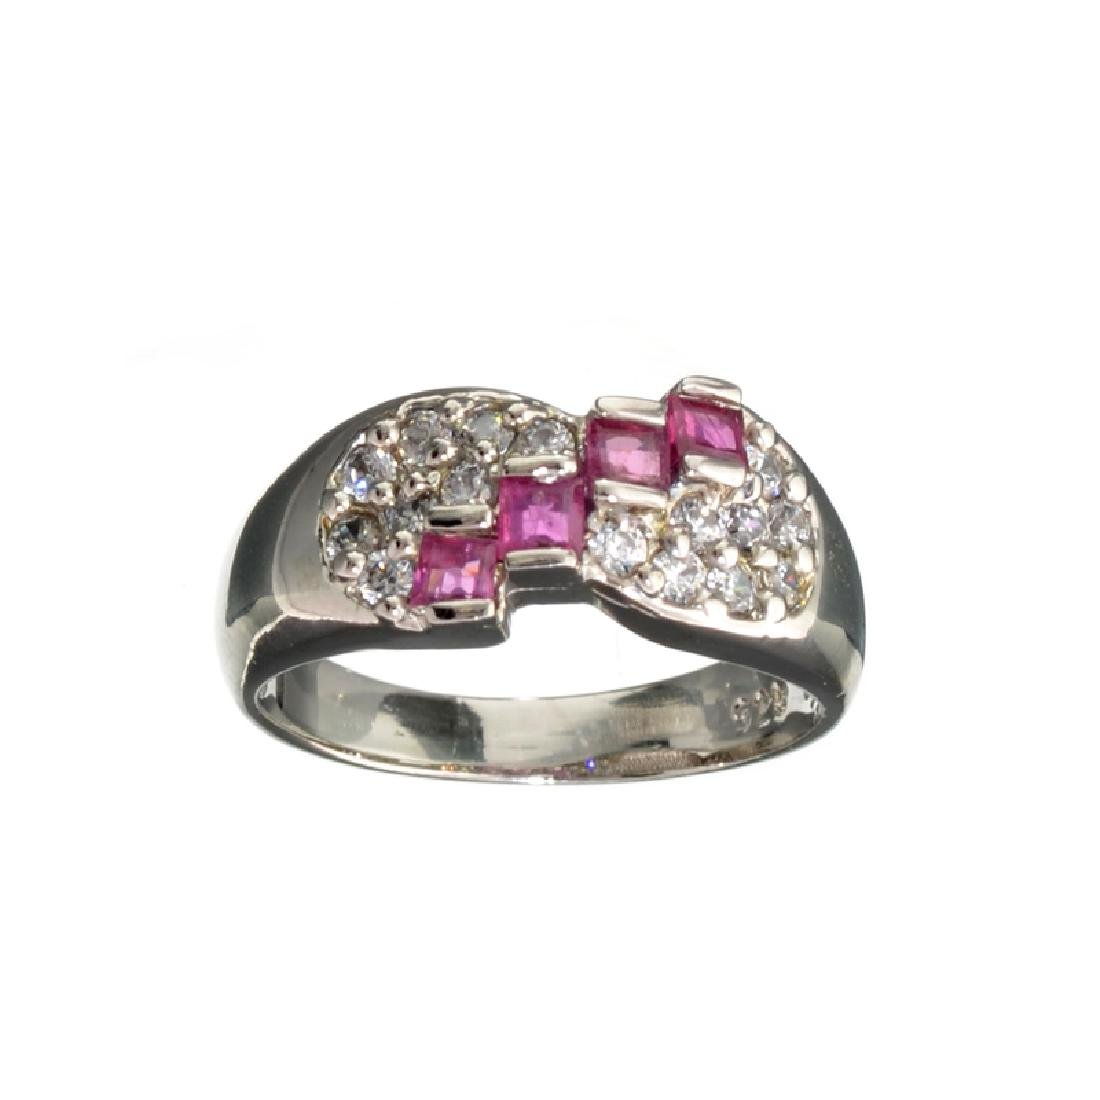 APP: 1k 0.39CT Ruby And Topaz Platinum Over Sterling